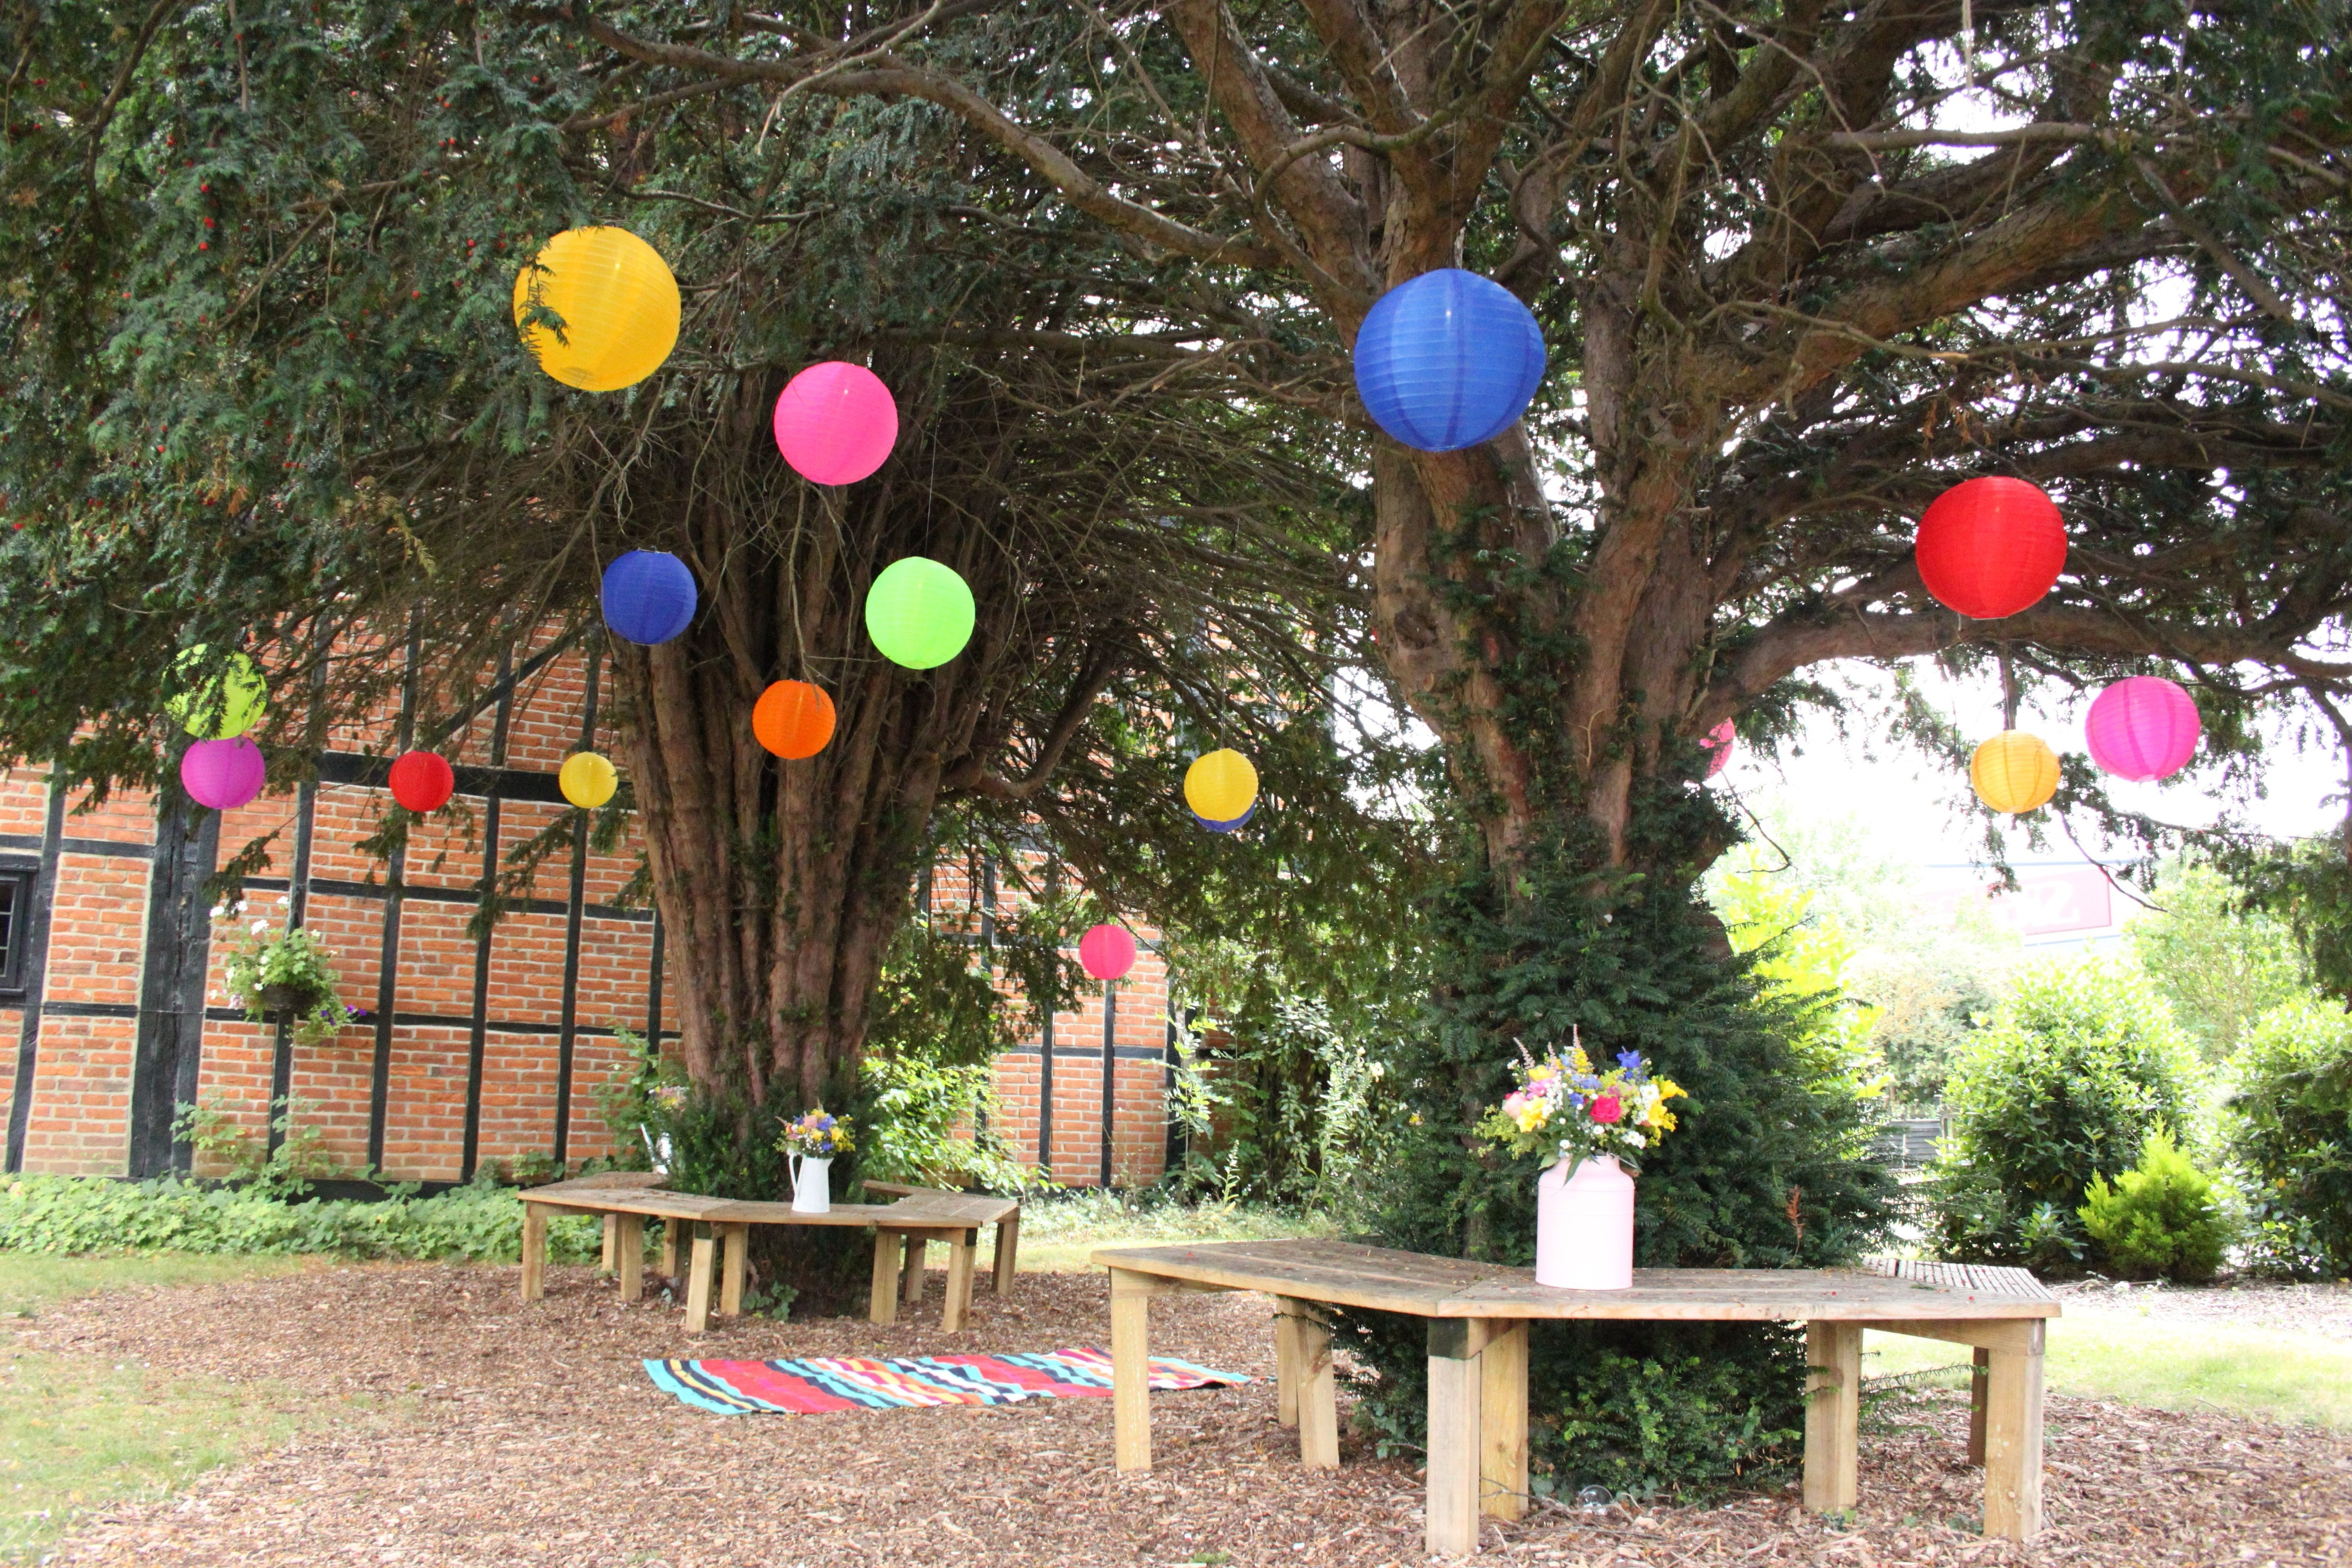 2019 Mad Hatters Outdoor Coloured Nylon Lanterns Hanging Randomly In The Regarding Outdoor Lanterns For Parties (View 14 of 20)